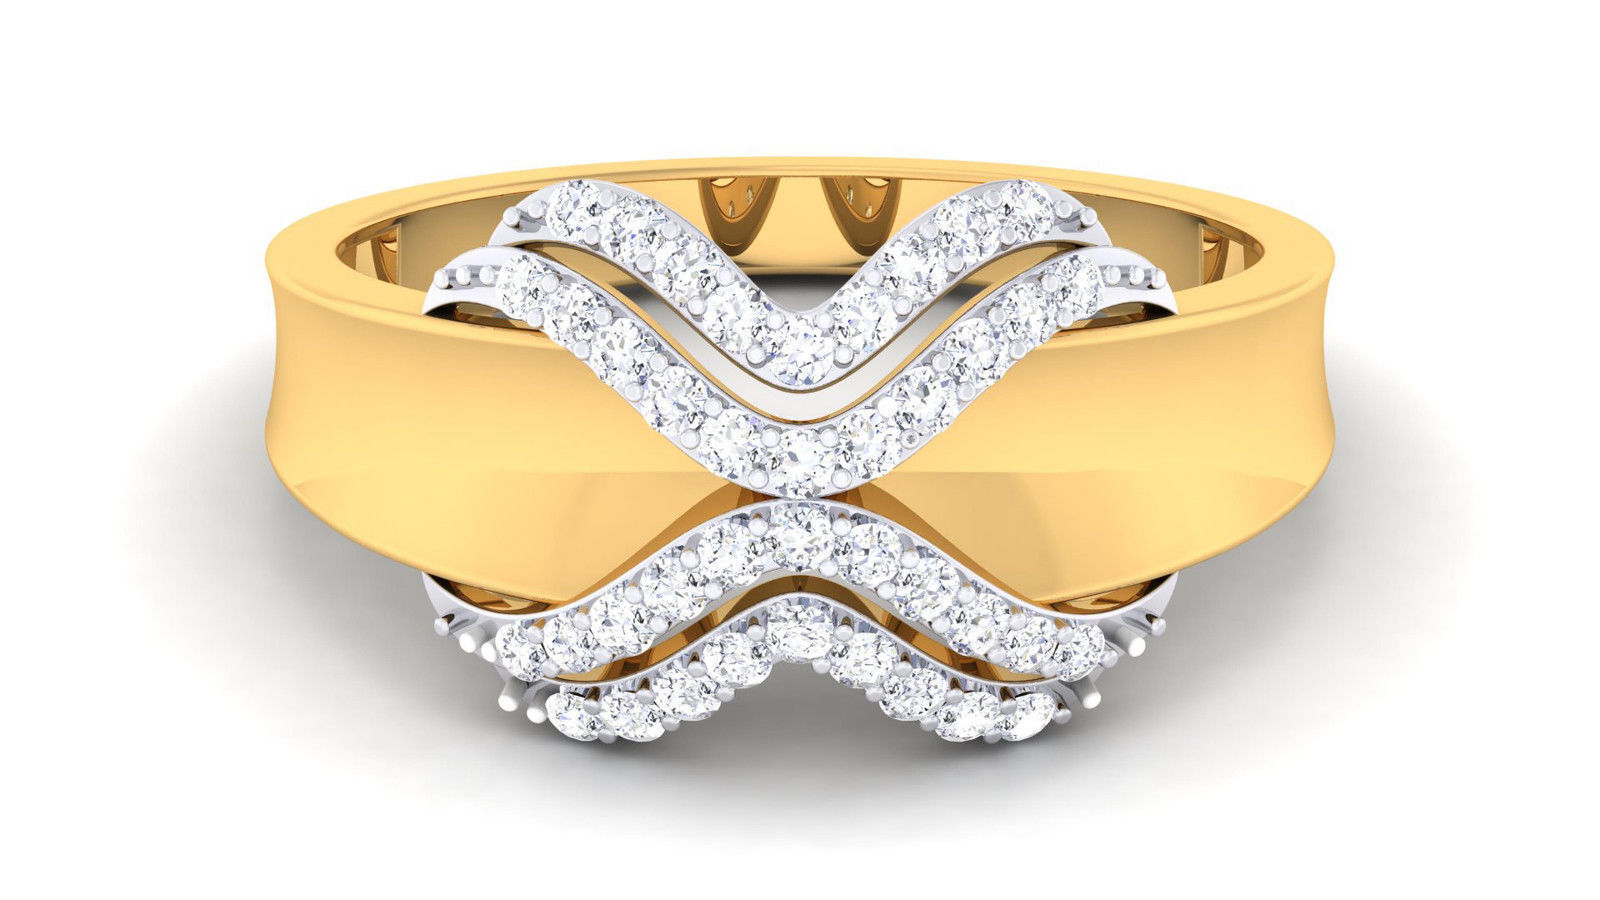 Pave 0.35 Cts Round Brilliant Cut Diamonds Engagement Ring In Solid 18Karat gold